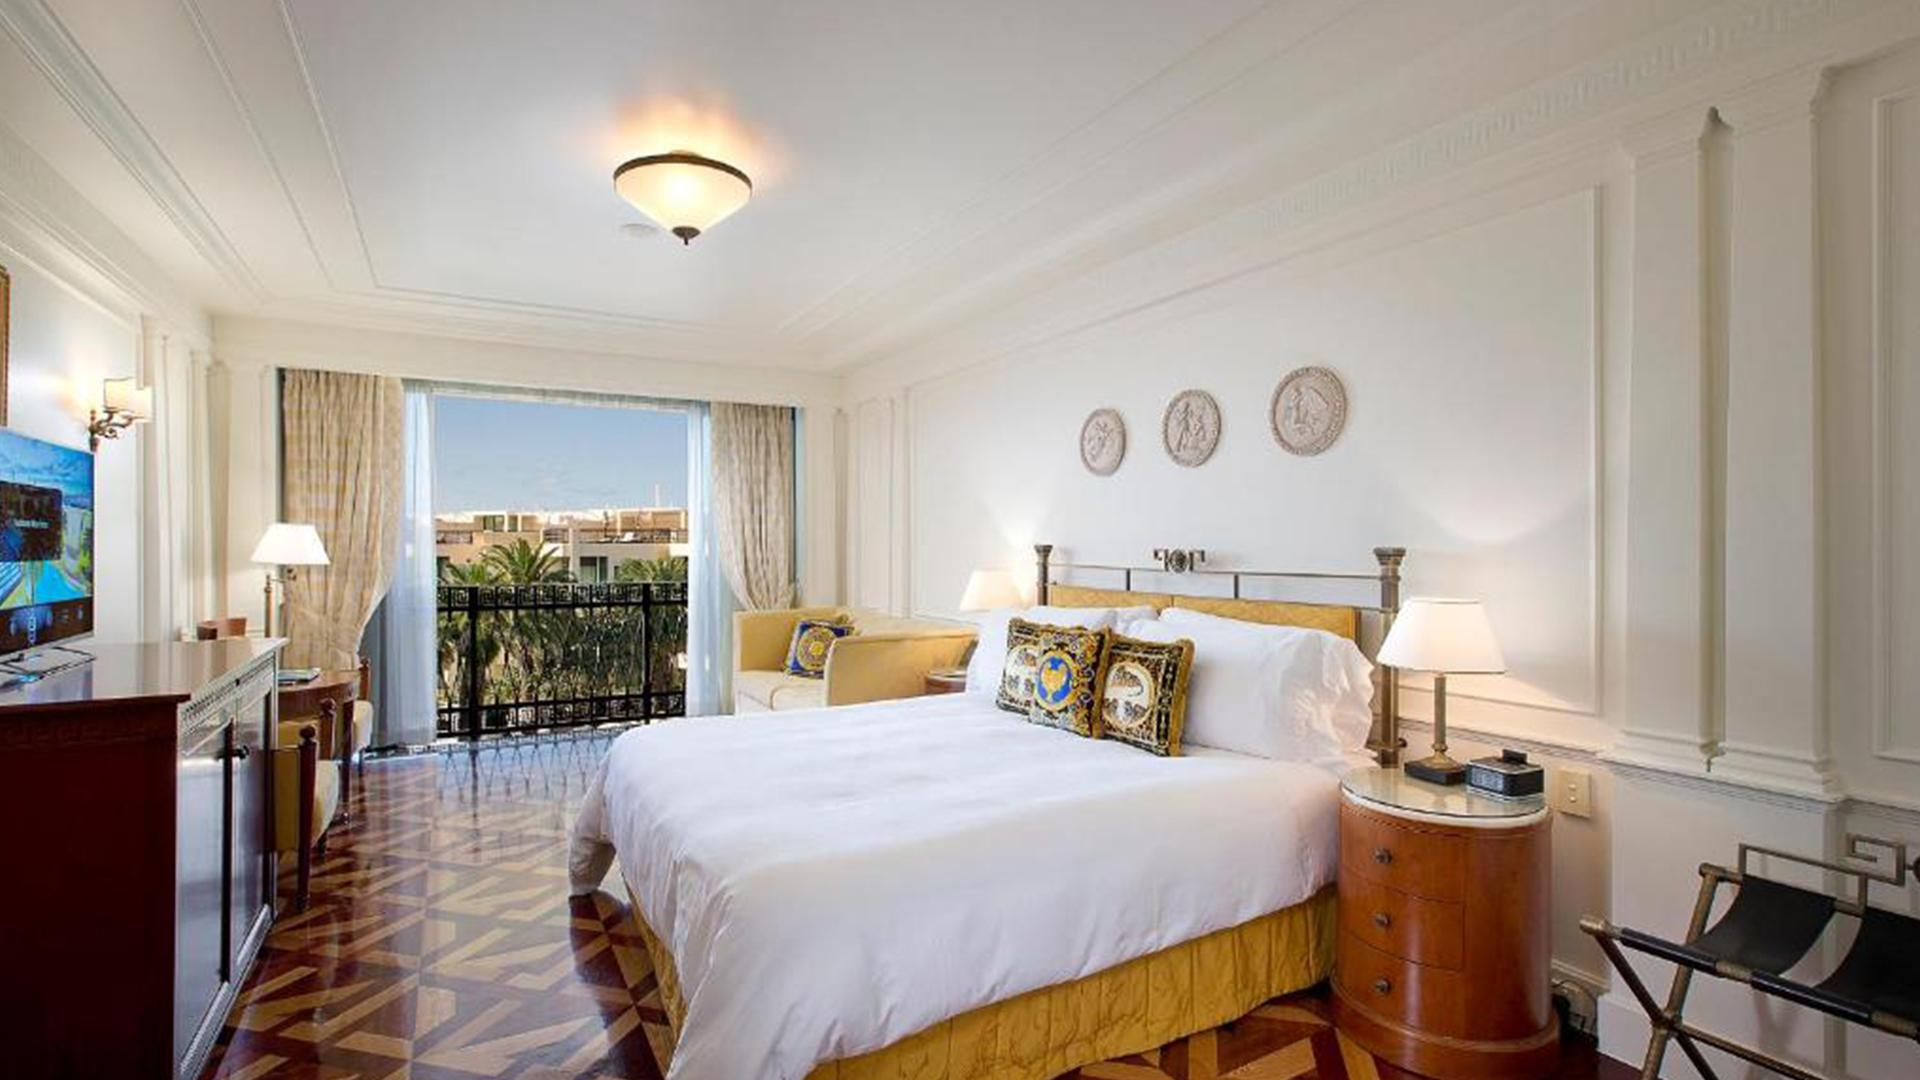 Superior Suite image 1 at Palazzo Versace by City of Gold Coast, Queensland, Australia